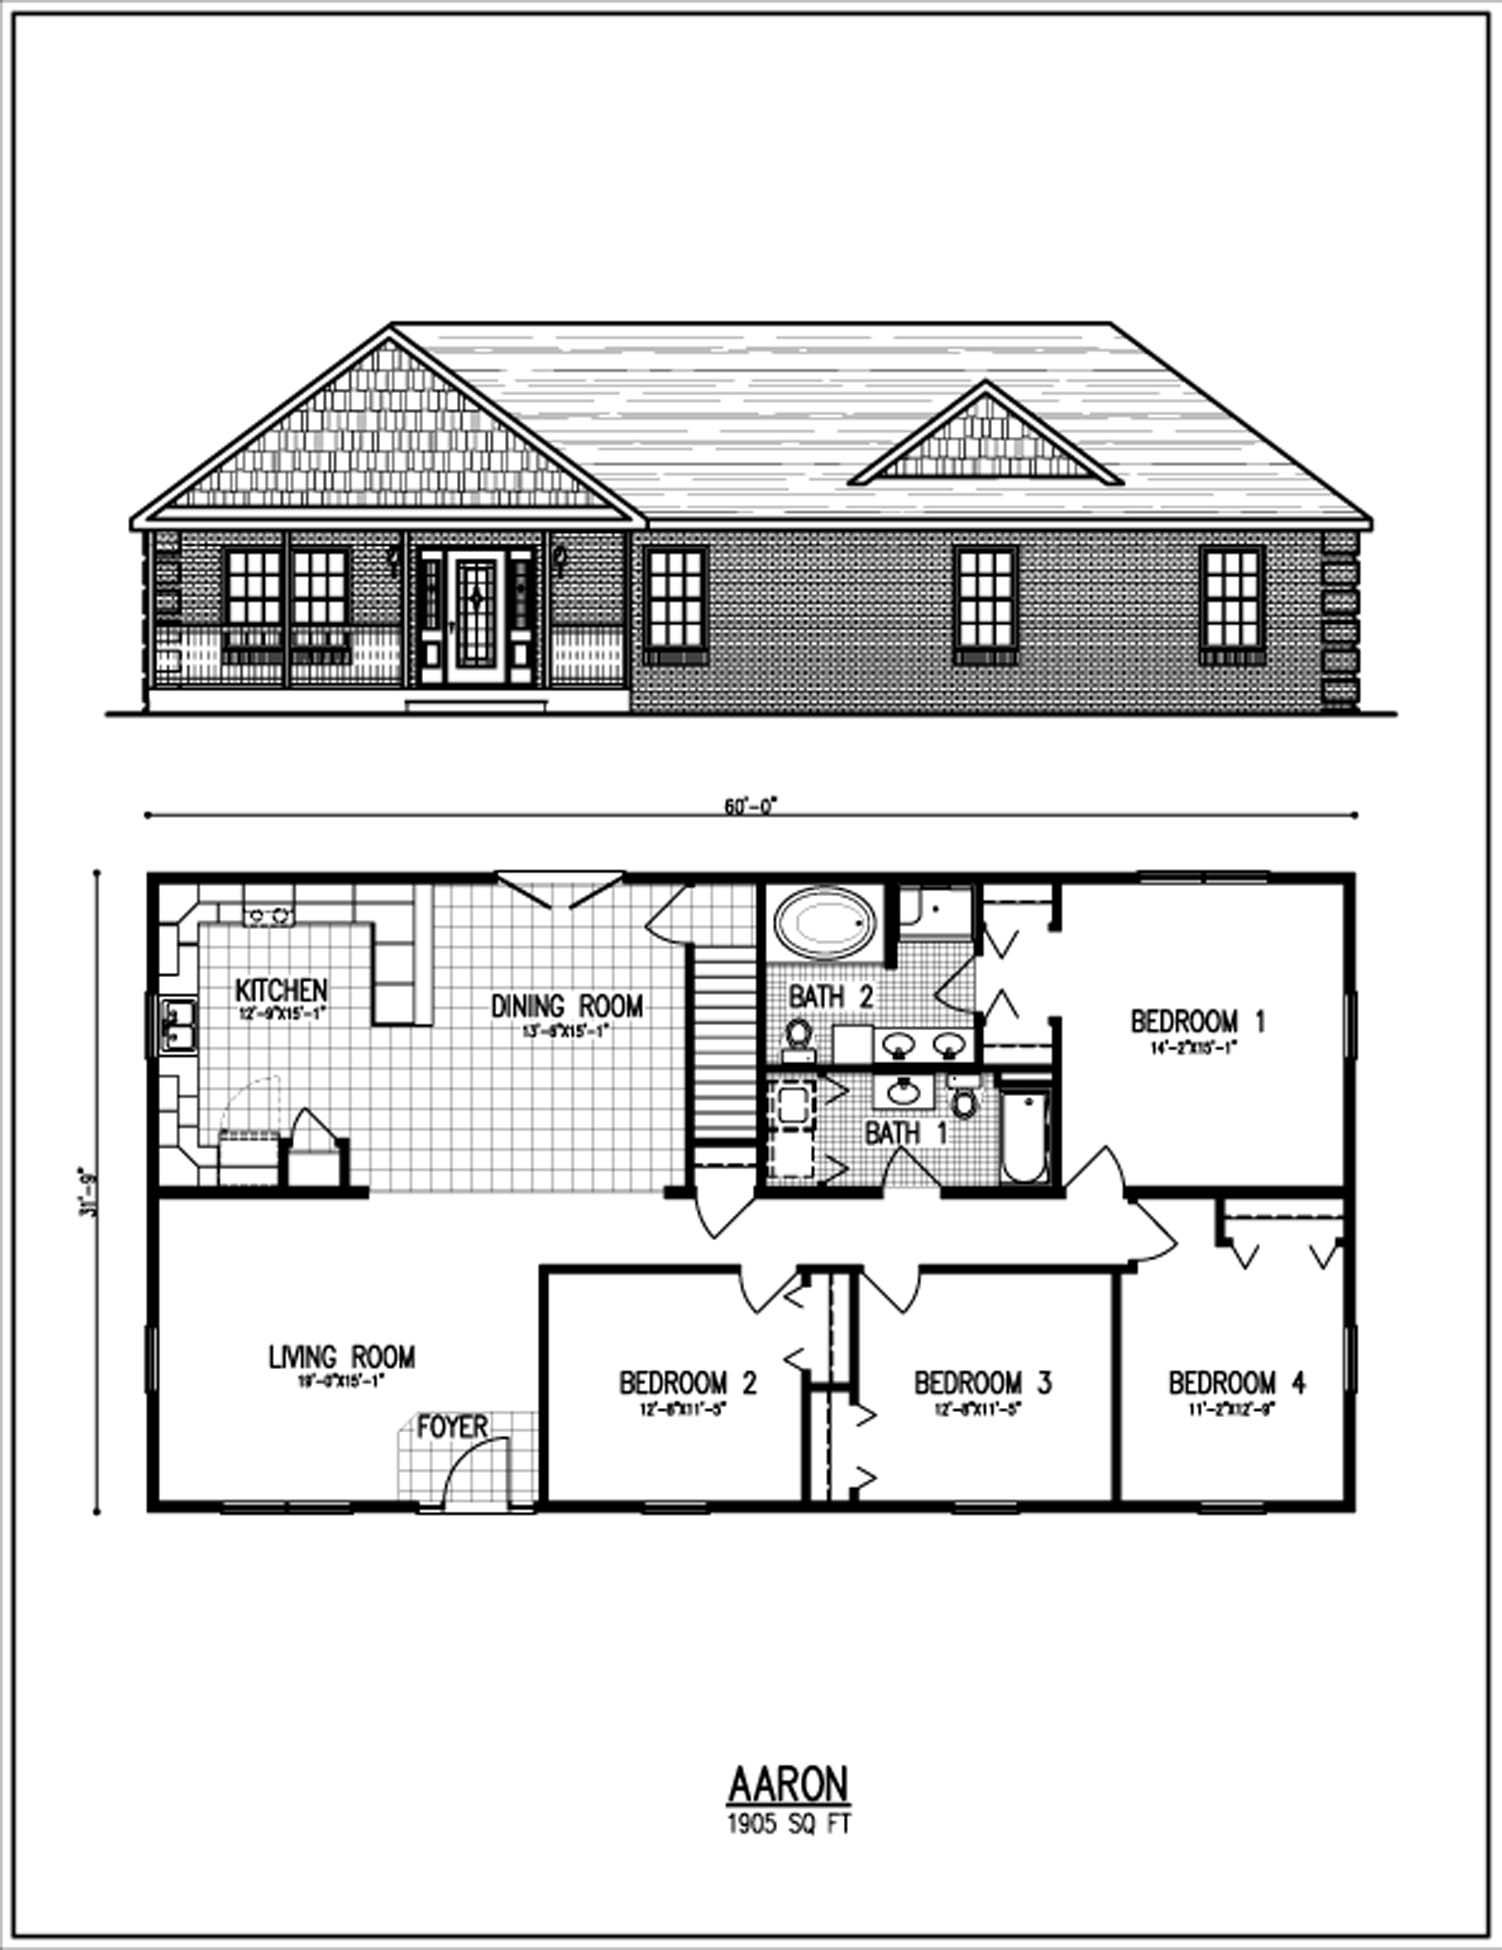 All american homes floorplan center staffordcape American home design plans